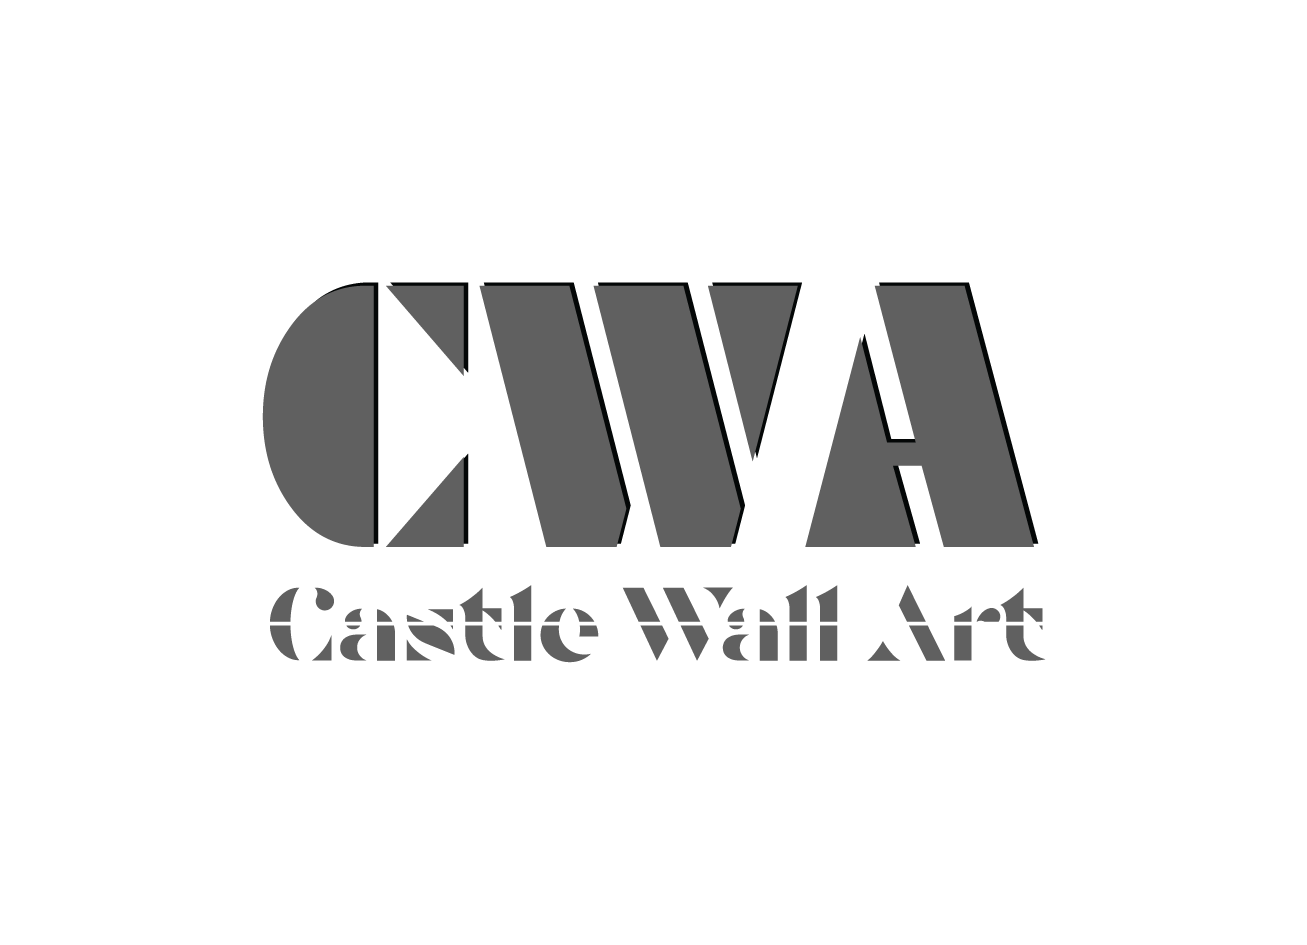 Castle Wall Art